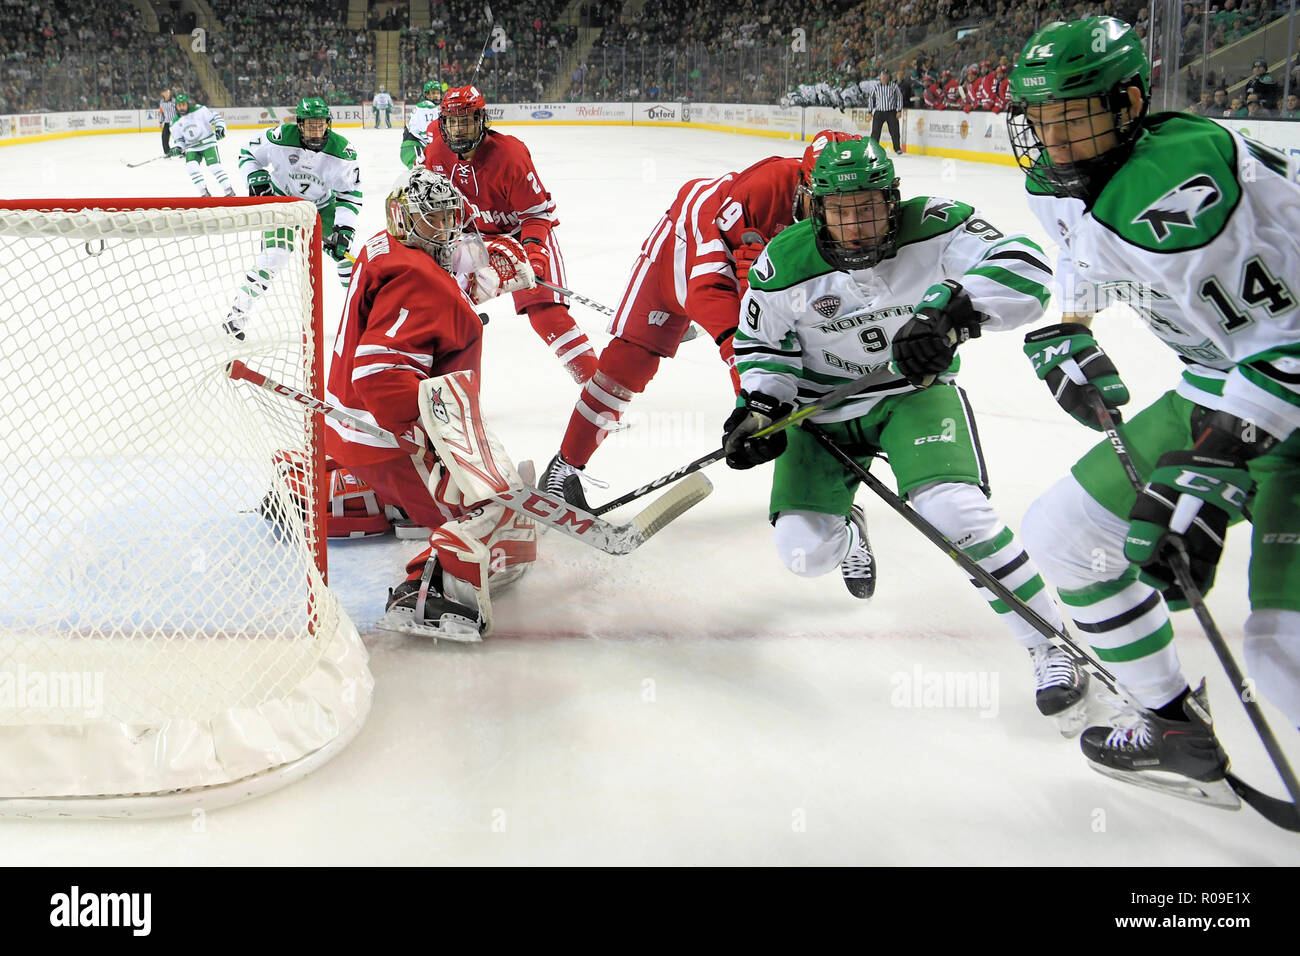 North Dakota, USA. 2 November 2018.  North Dakota Fighting Hawks forward Jasper Weatherby (14) and North Dakota Fighting Hawks forward Dixon Bowen (9) race after the puck during a NCAA men's college hockey game between the Wisconsin Badgers and the University of North Dakota Fighting Hawks at Ralph Engelstad Arena in Grand Forks, ND. North Dakota won 5-0. Photo by Russell Hons/CSM Credit: Cal Sport Media/Alamy Live News - Stock Image